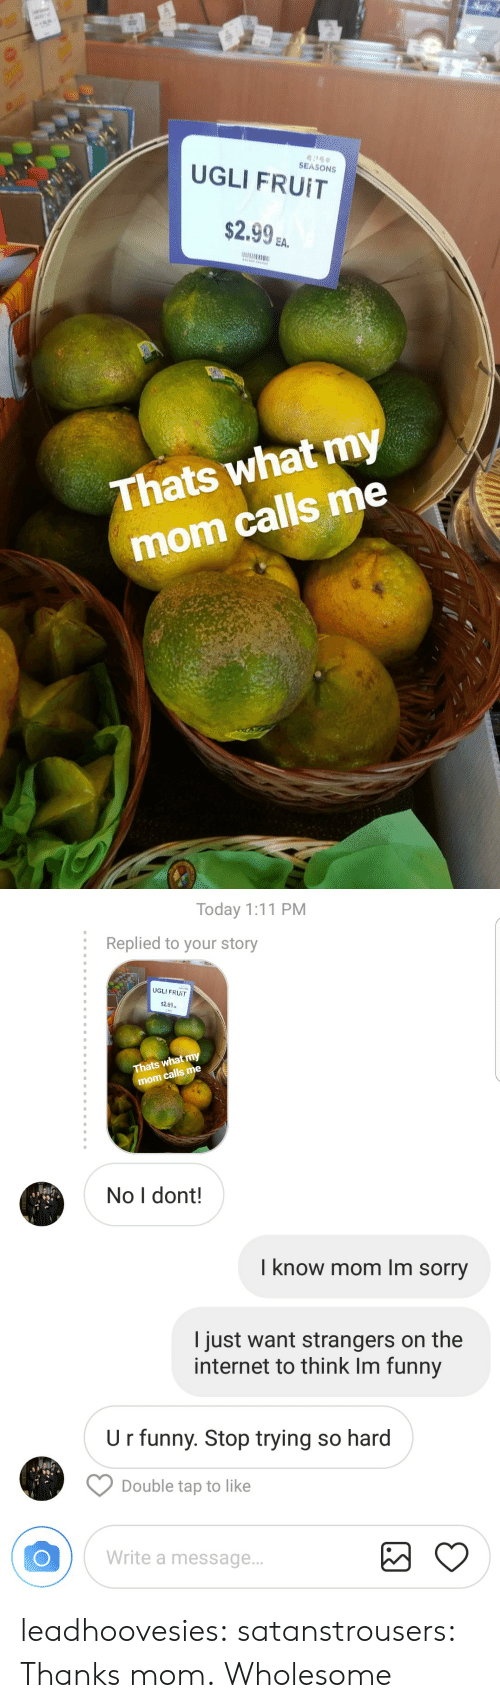 Funny, Internet, and Sorry: SEASONS  UGLI FRUIT  $2.9%.  EA.  Thats what my  mom calls me   Today 1:11 PM  :  Replied to your story  UGLI FRUIT  2.99a  Thats what my  calls me  mom  No I dont!  I know mom Im sorry  I just want strangers on the  internet to think Im funny  U r funny. Stop trying so hard  Double tap to like  Write a message.. leadhoovesies:  satanstrousers: Thanks mom.  Wholesome